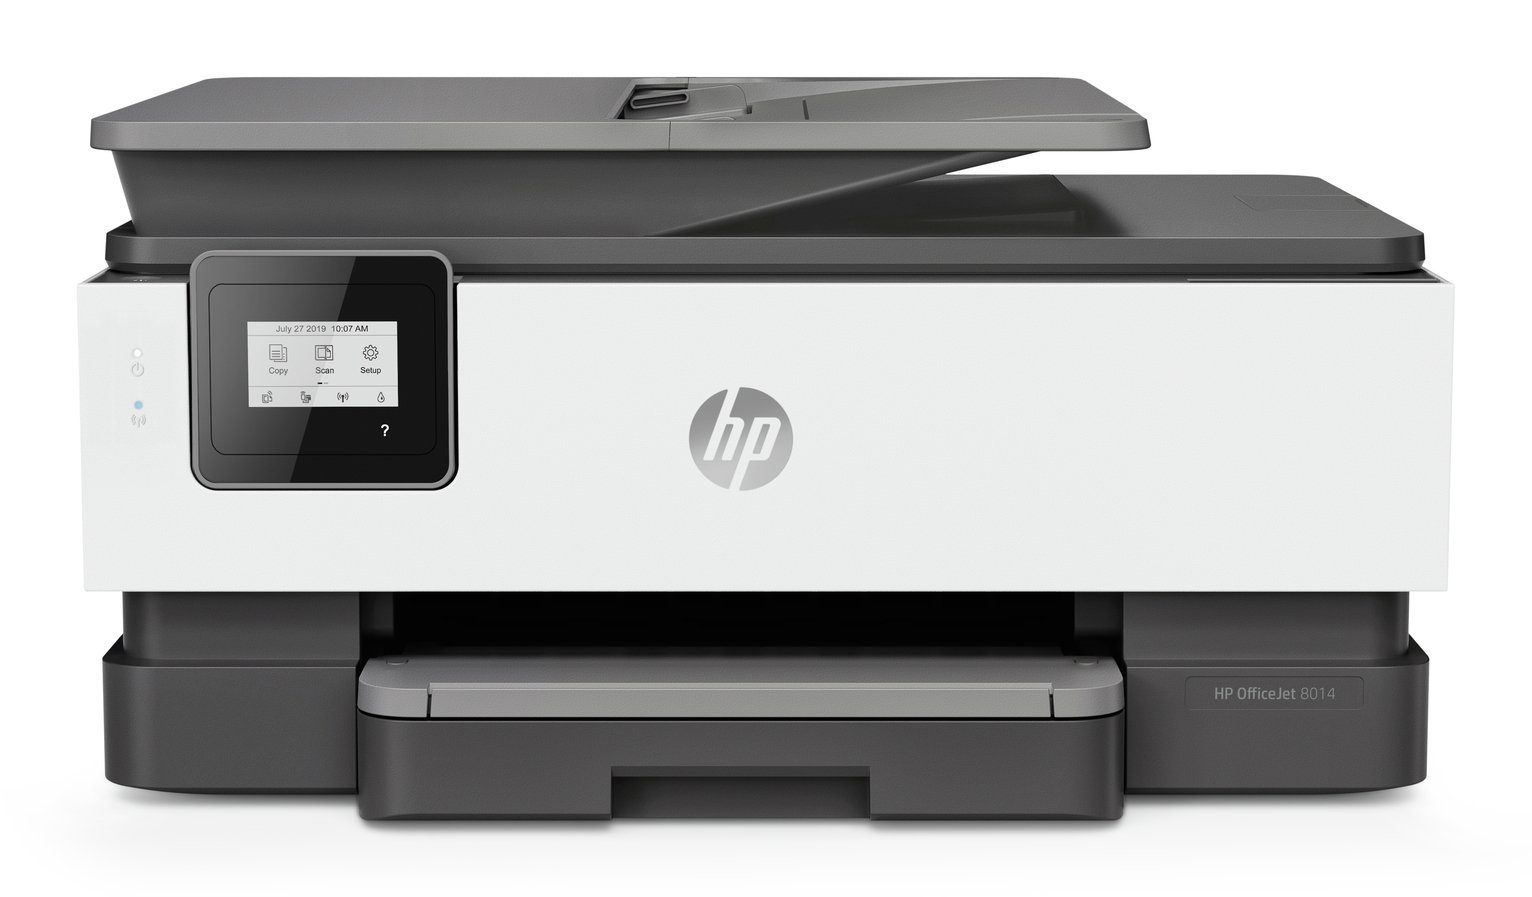 HP OfficeJet Pro 8014 Wireless Printer & 3 Month Instant Ink